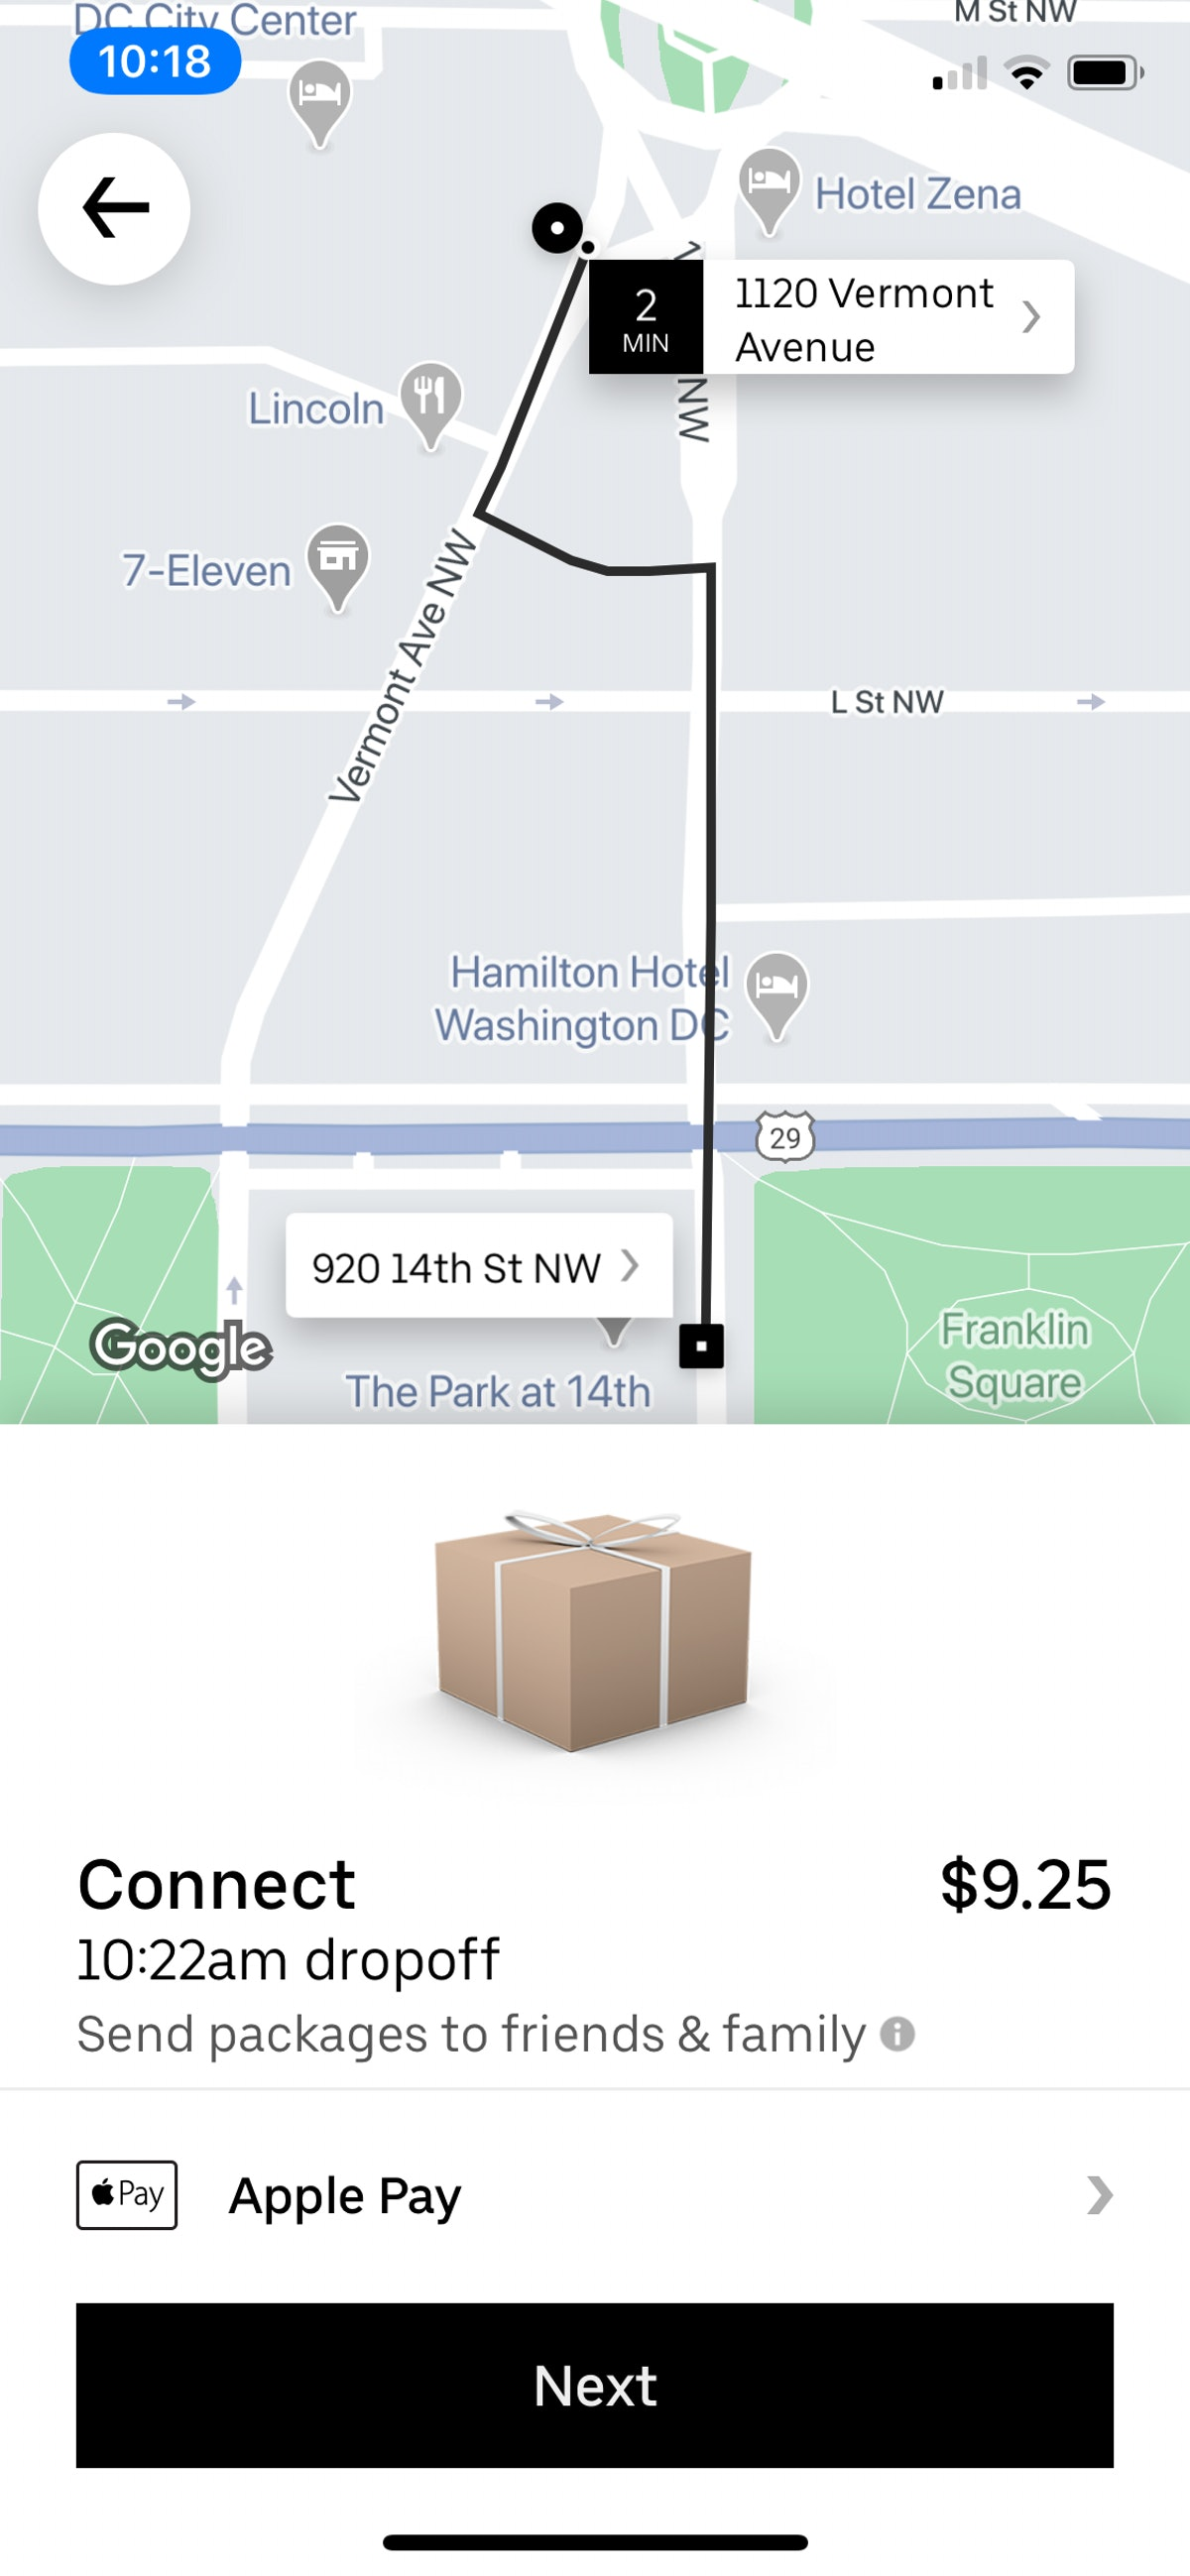 These New Uber Connect & Direct Services Include Expanded Delivery Options